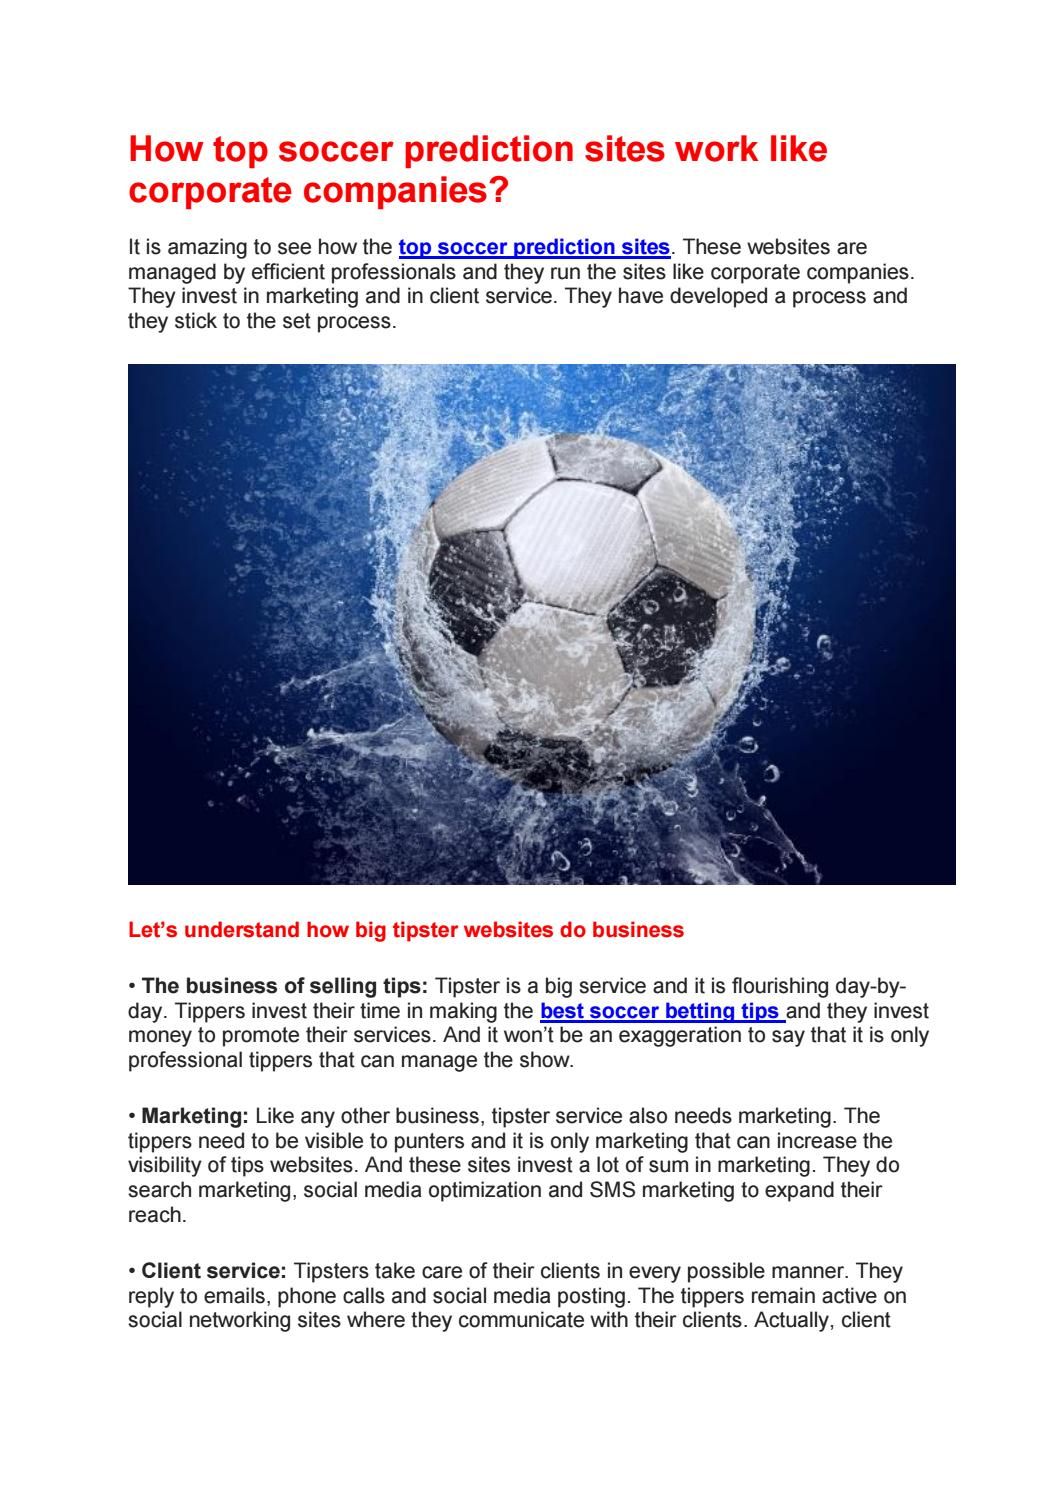 How top soccer prediction sites work like corporate